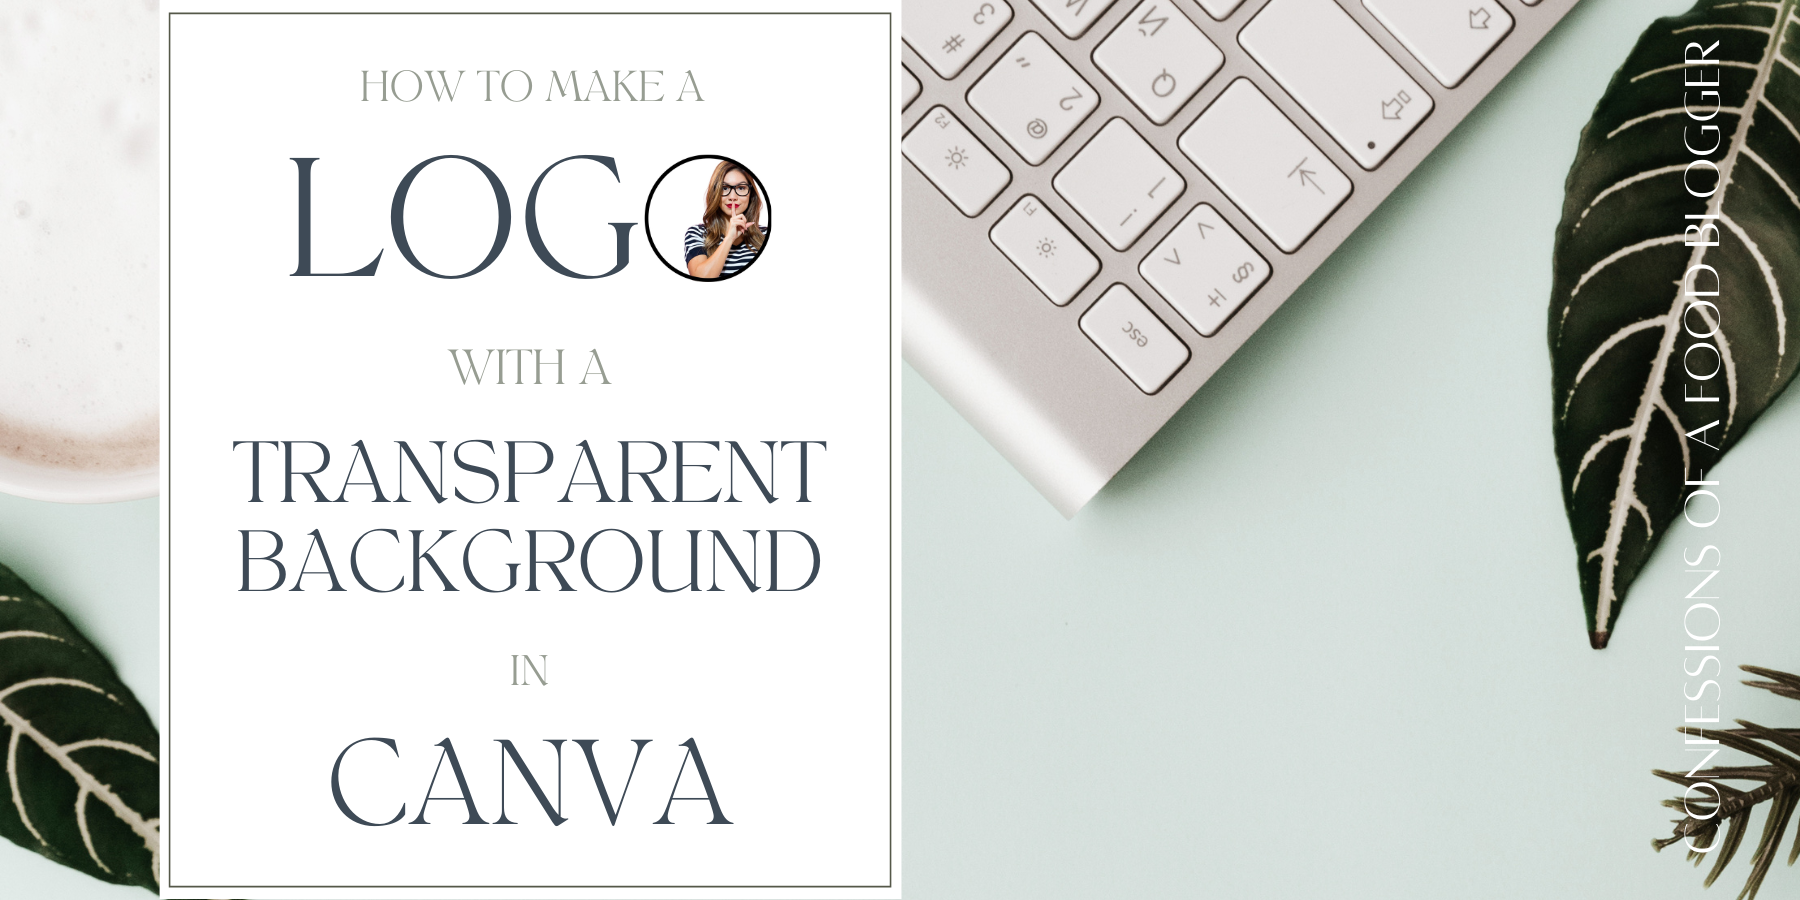 How to Make Logo with a Transparent Background in Canva